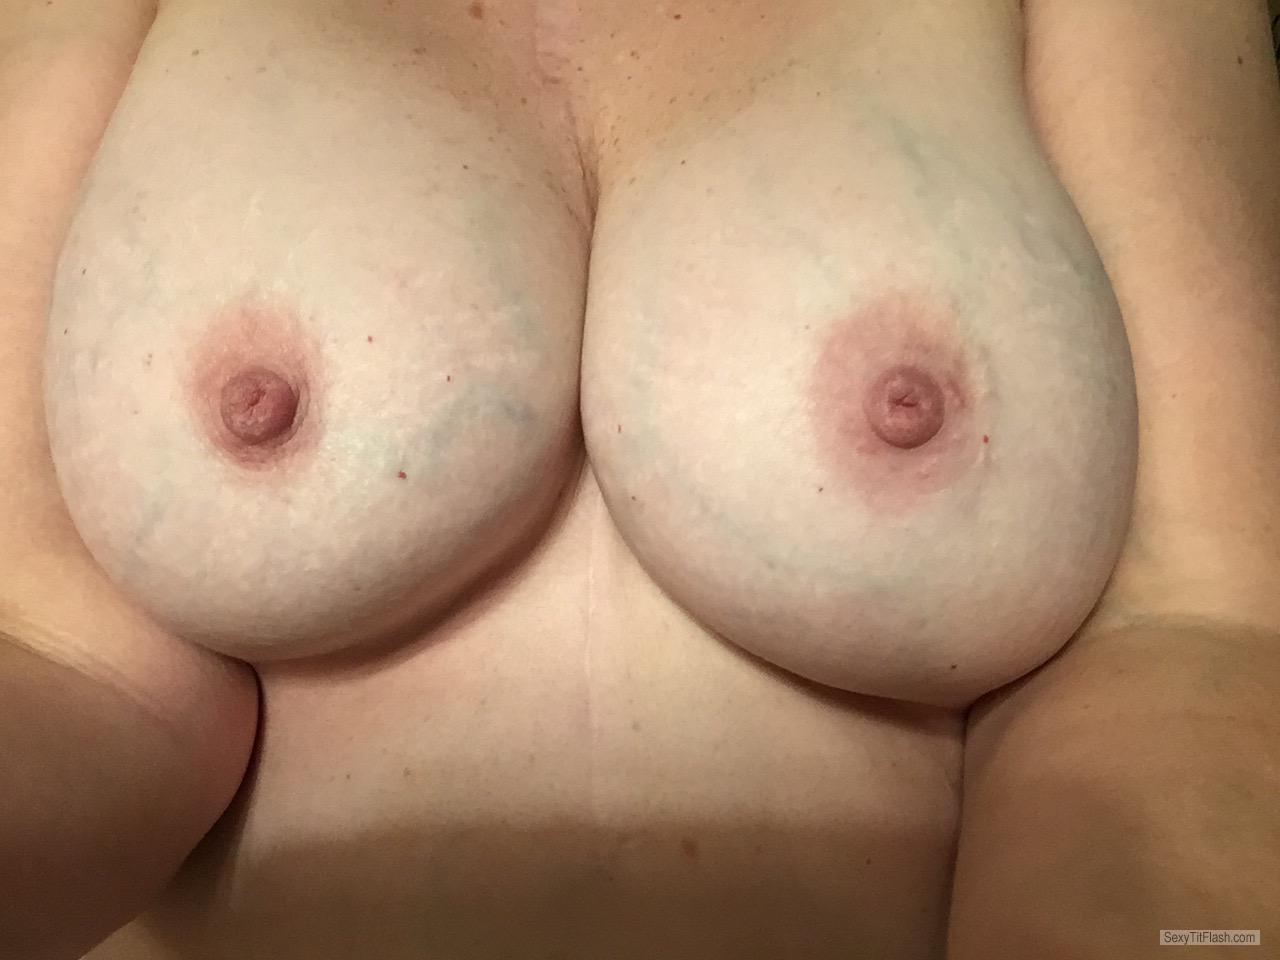 Tit Flash: My Tanlined Very Small Tits (Selfie) - Bogtits from United States